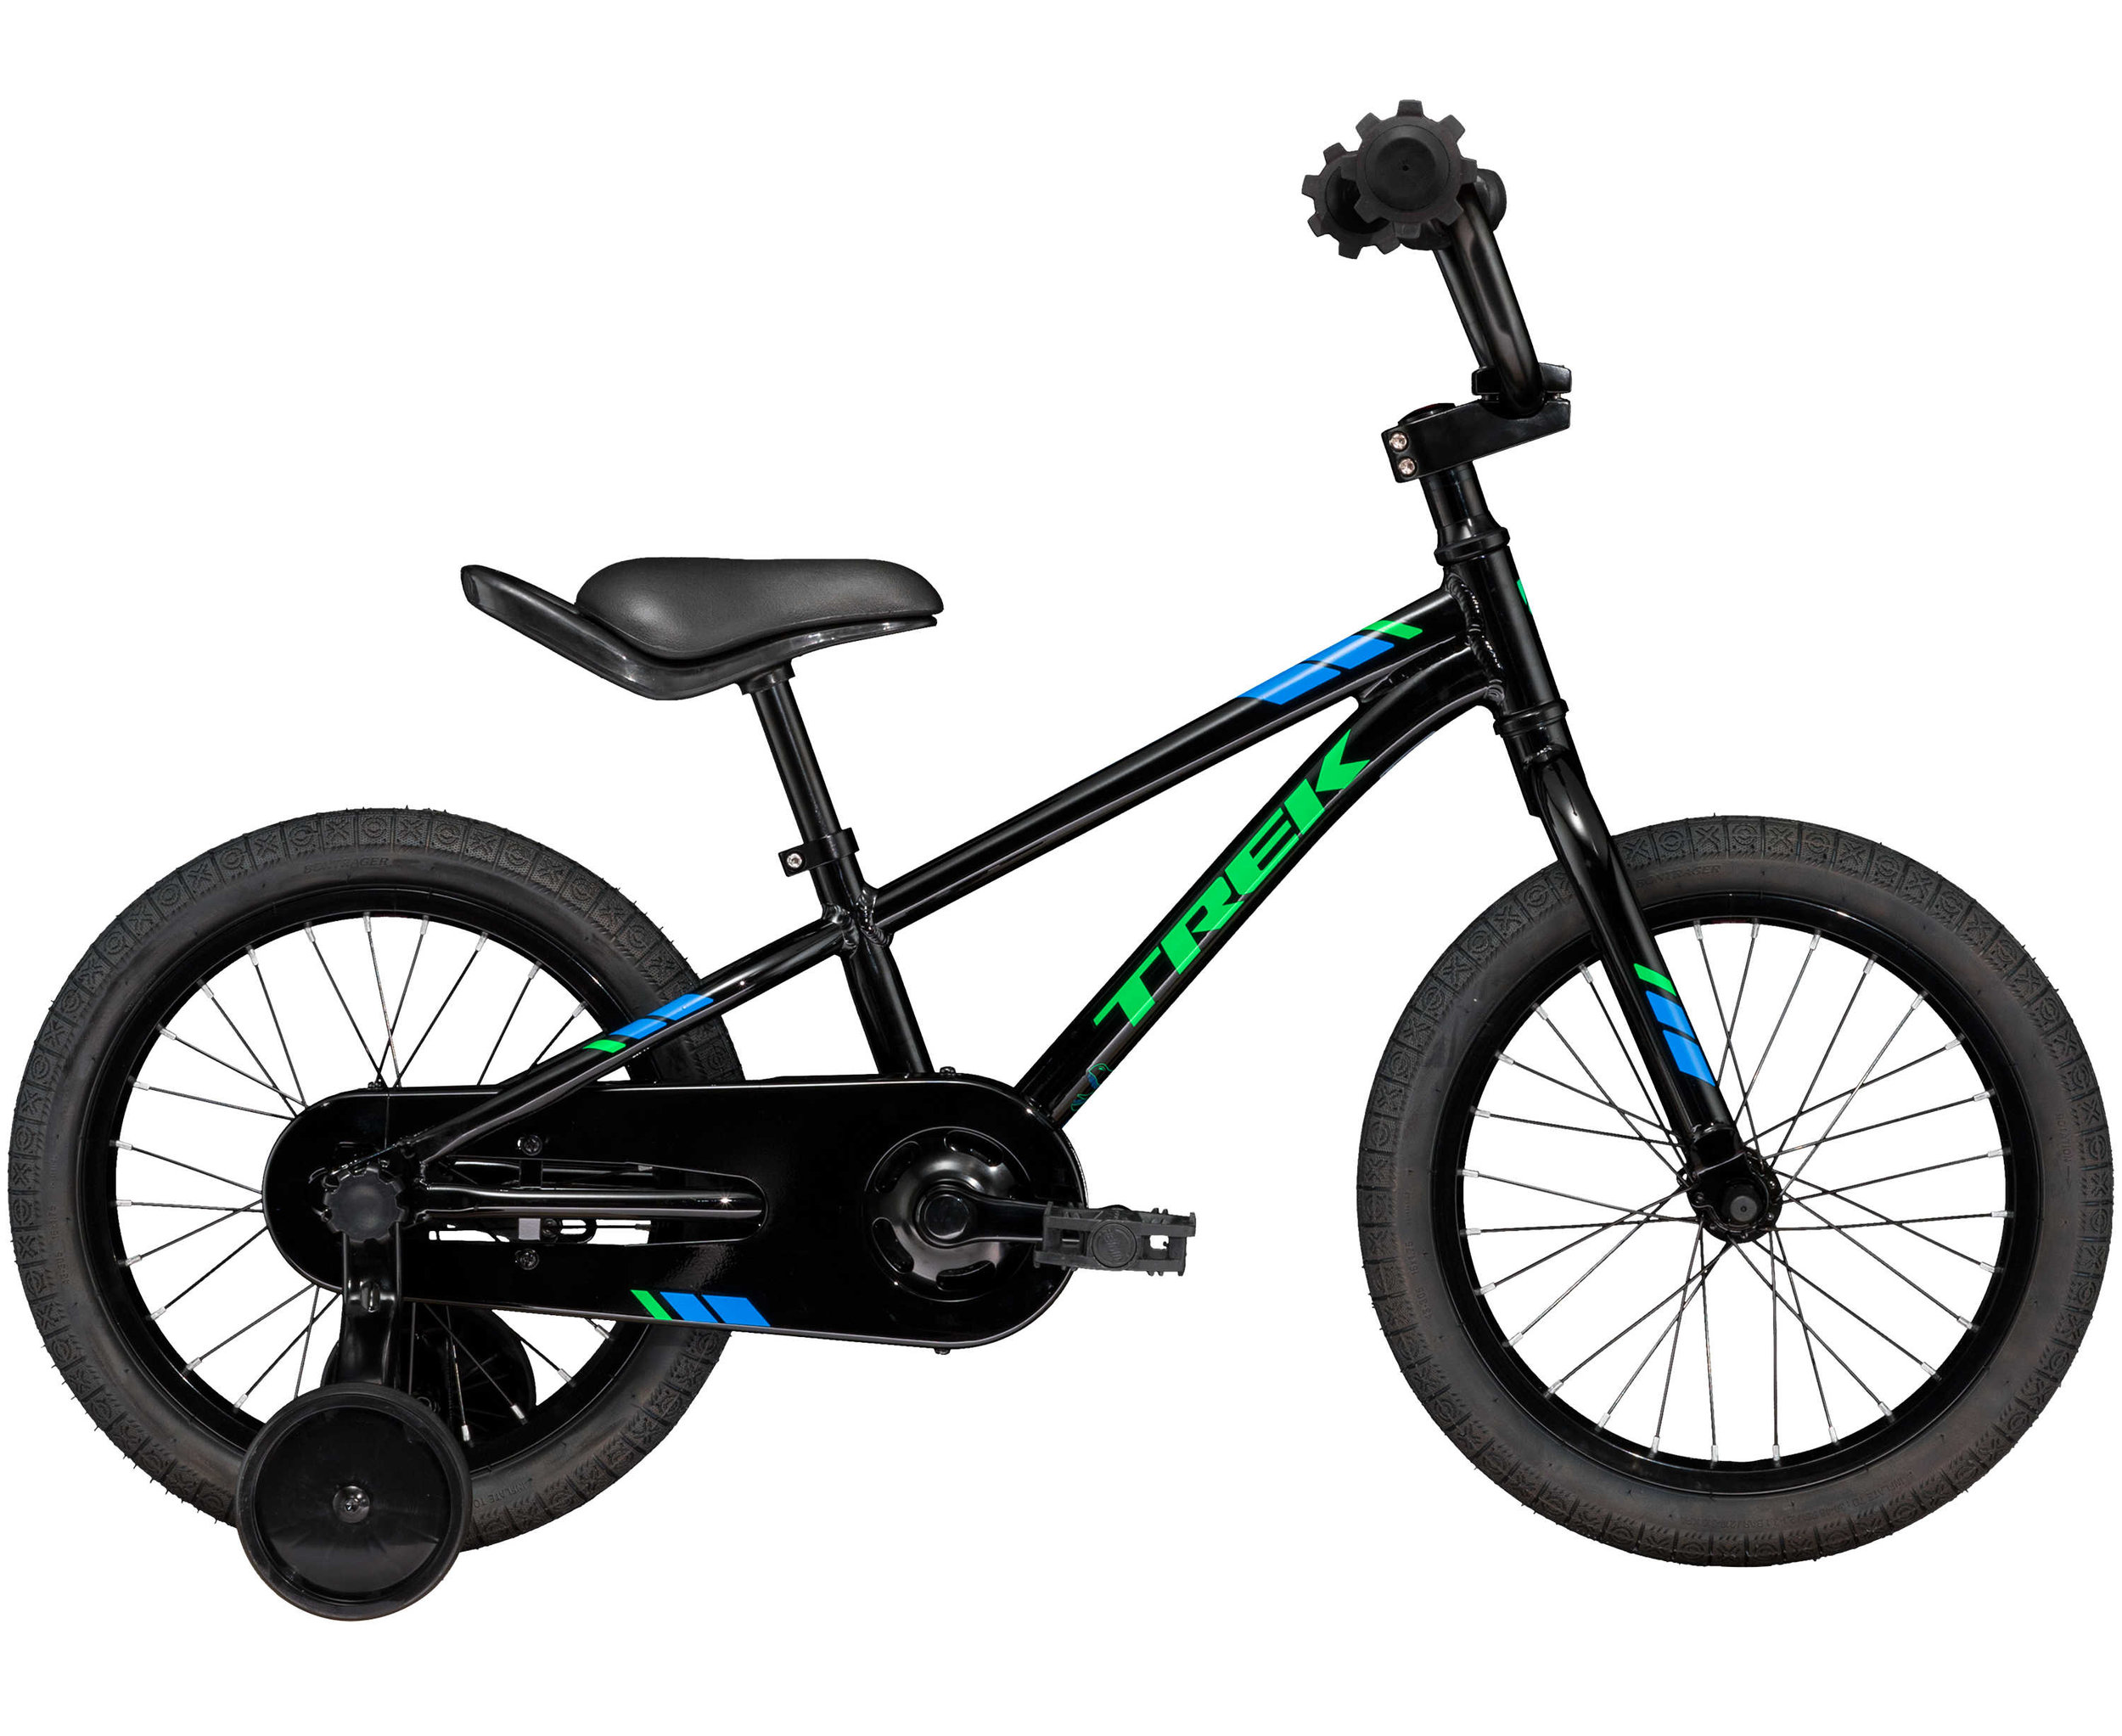 Teaching and learning to ride is a breeze with Precaliber 16 Boy's. It has a handle built into the saddle so you can guide while they ride, and tool-less training wheels that are super easy to install and remove. It's a great fit for kids ages 4-5 between 39-46˝ tall.